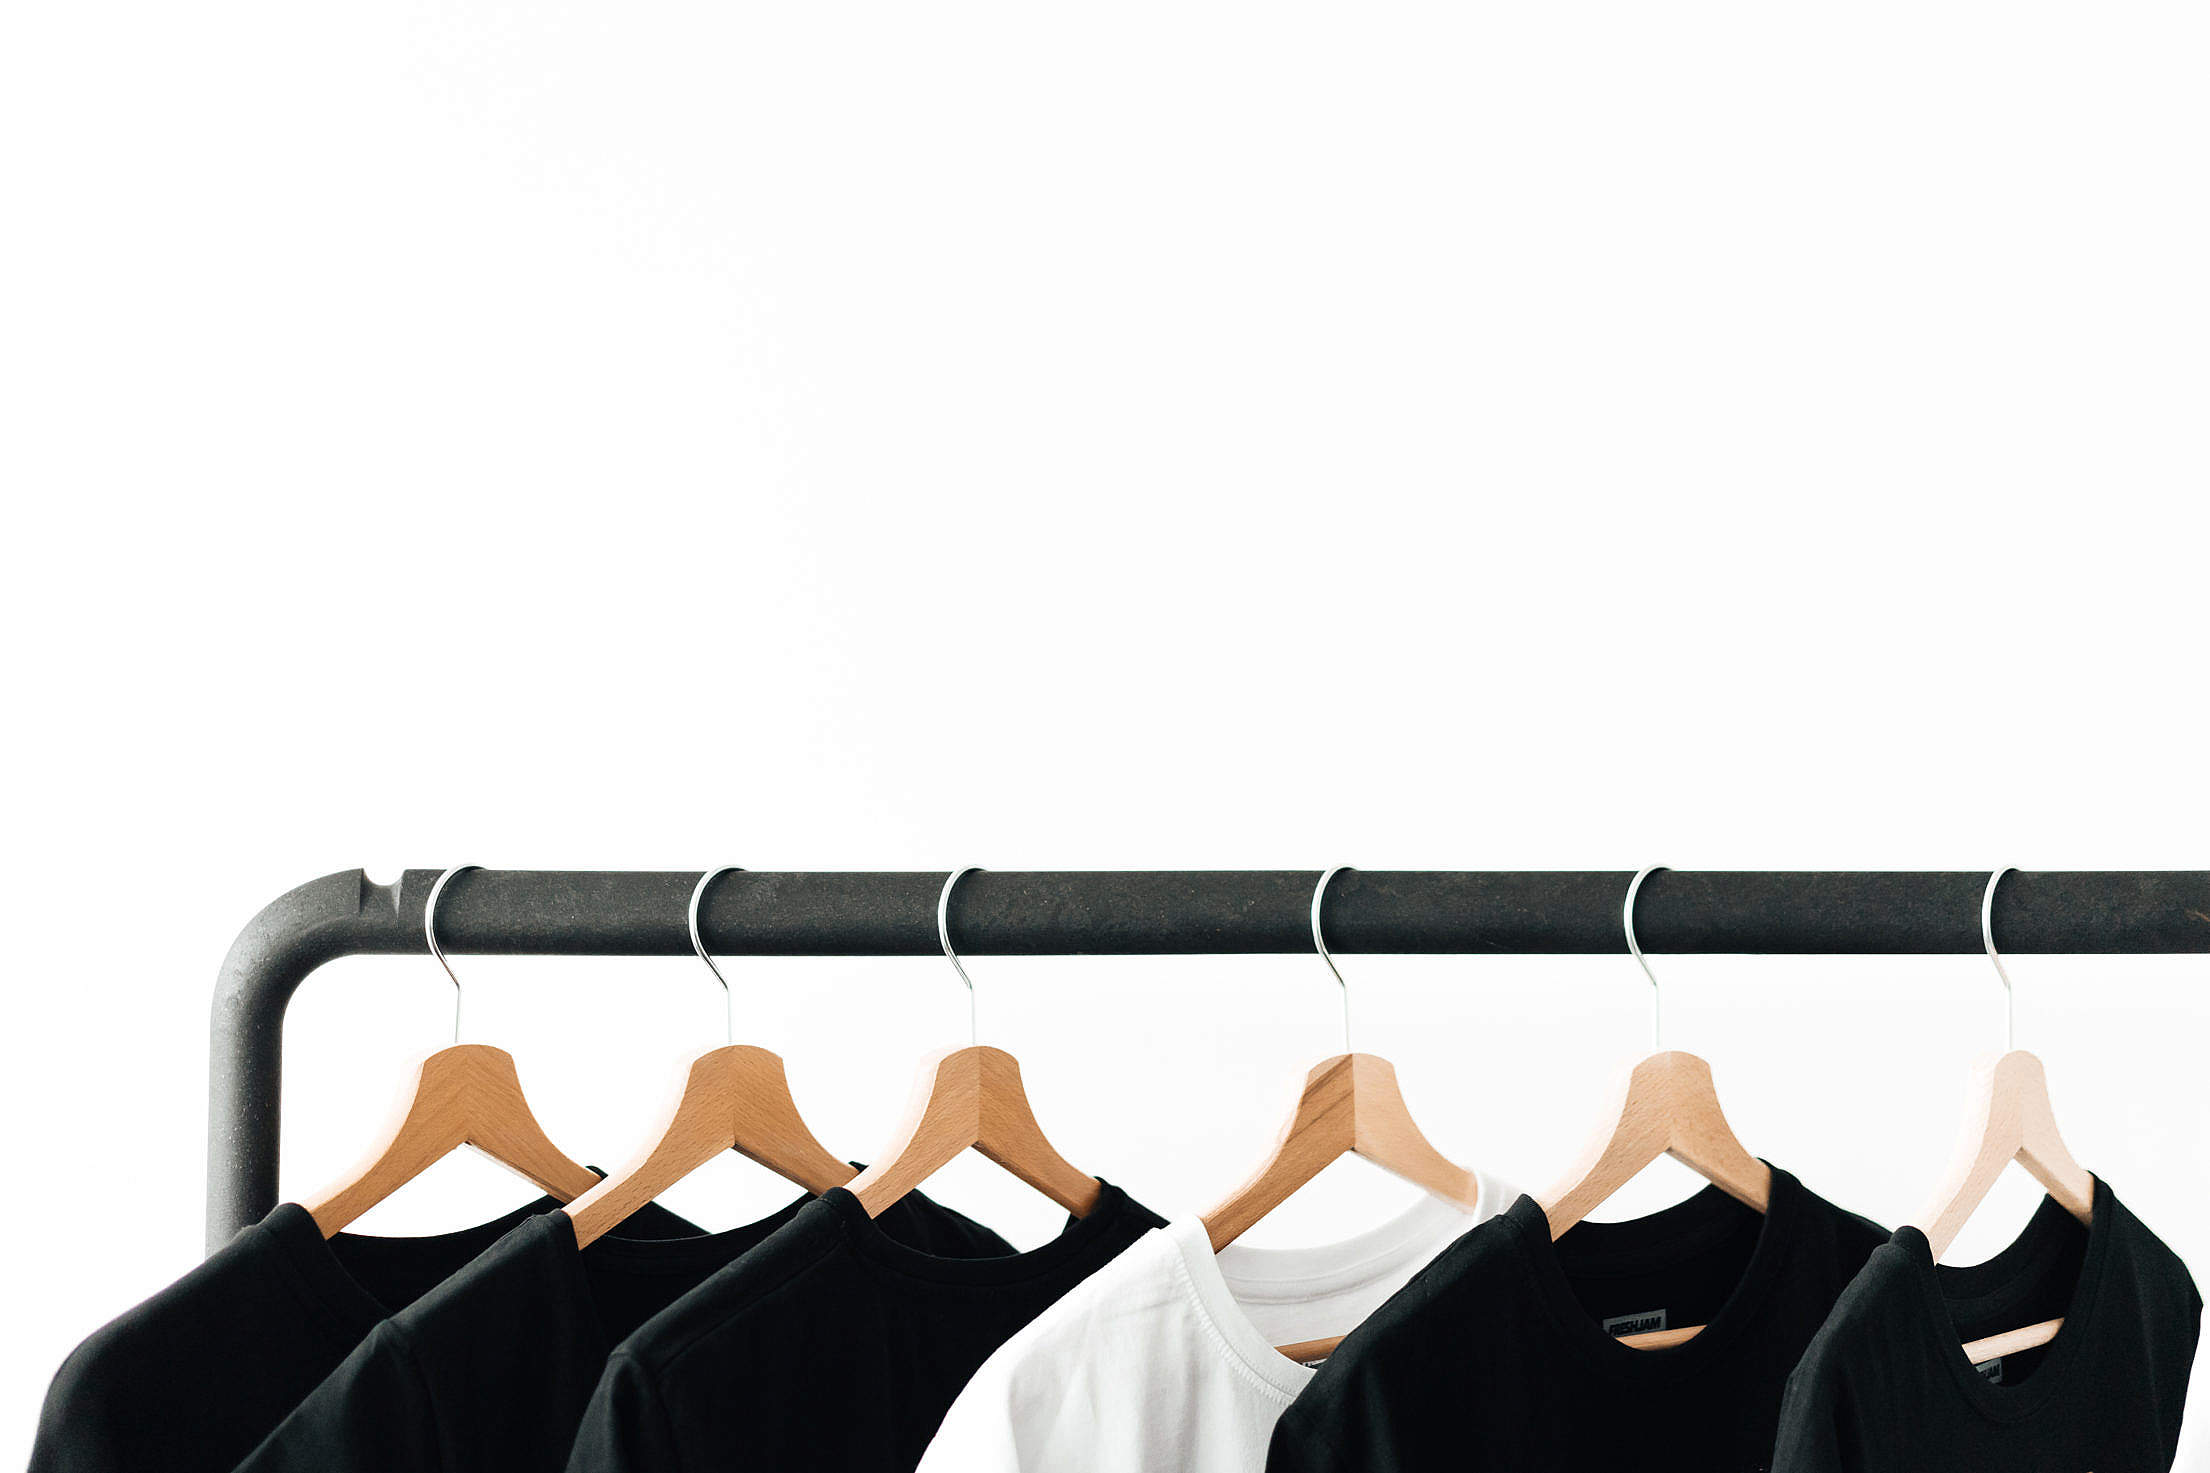 T-Shirts on Rack with Room for Text Free Stock Photo